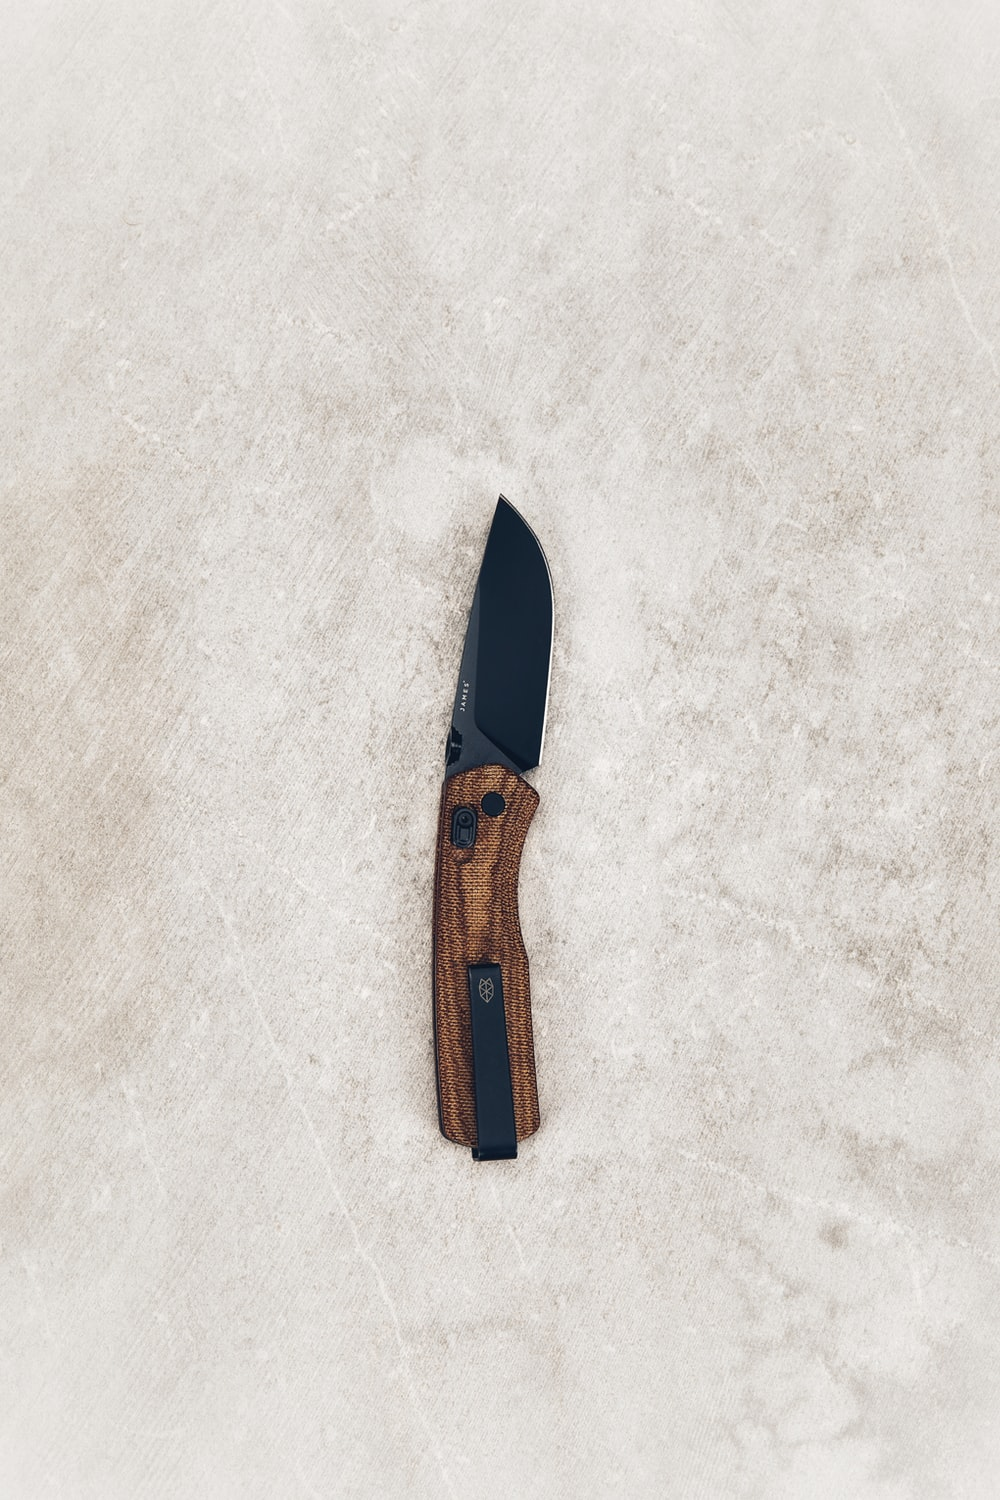 black and brown pocketknife